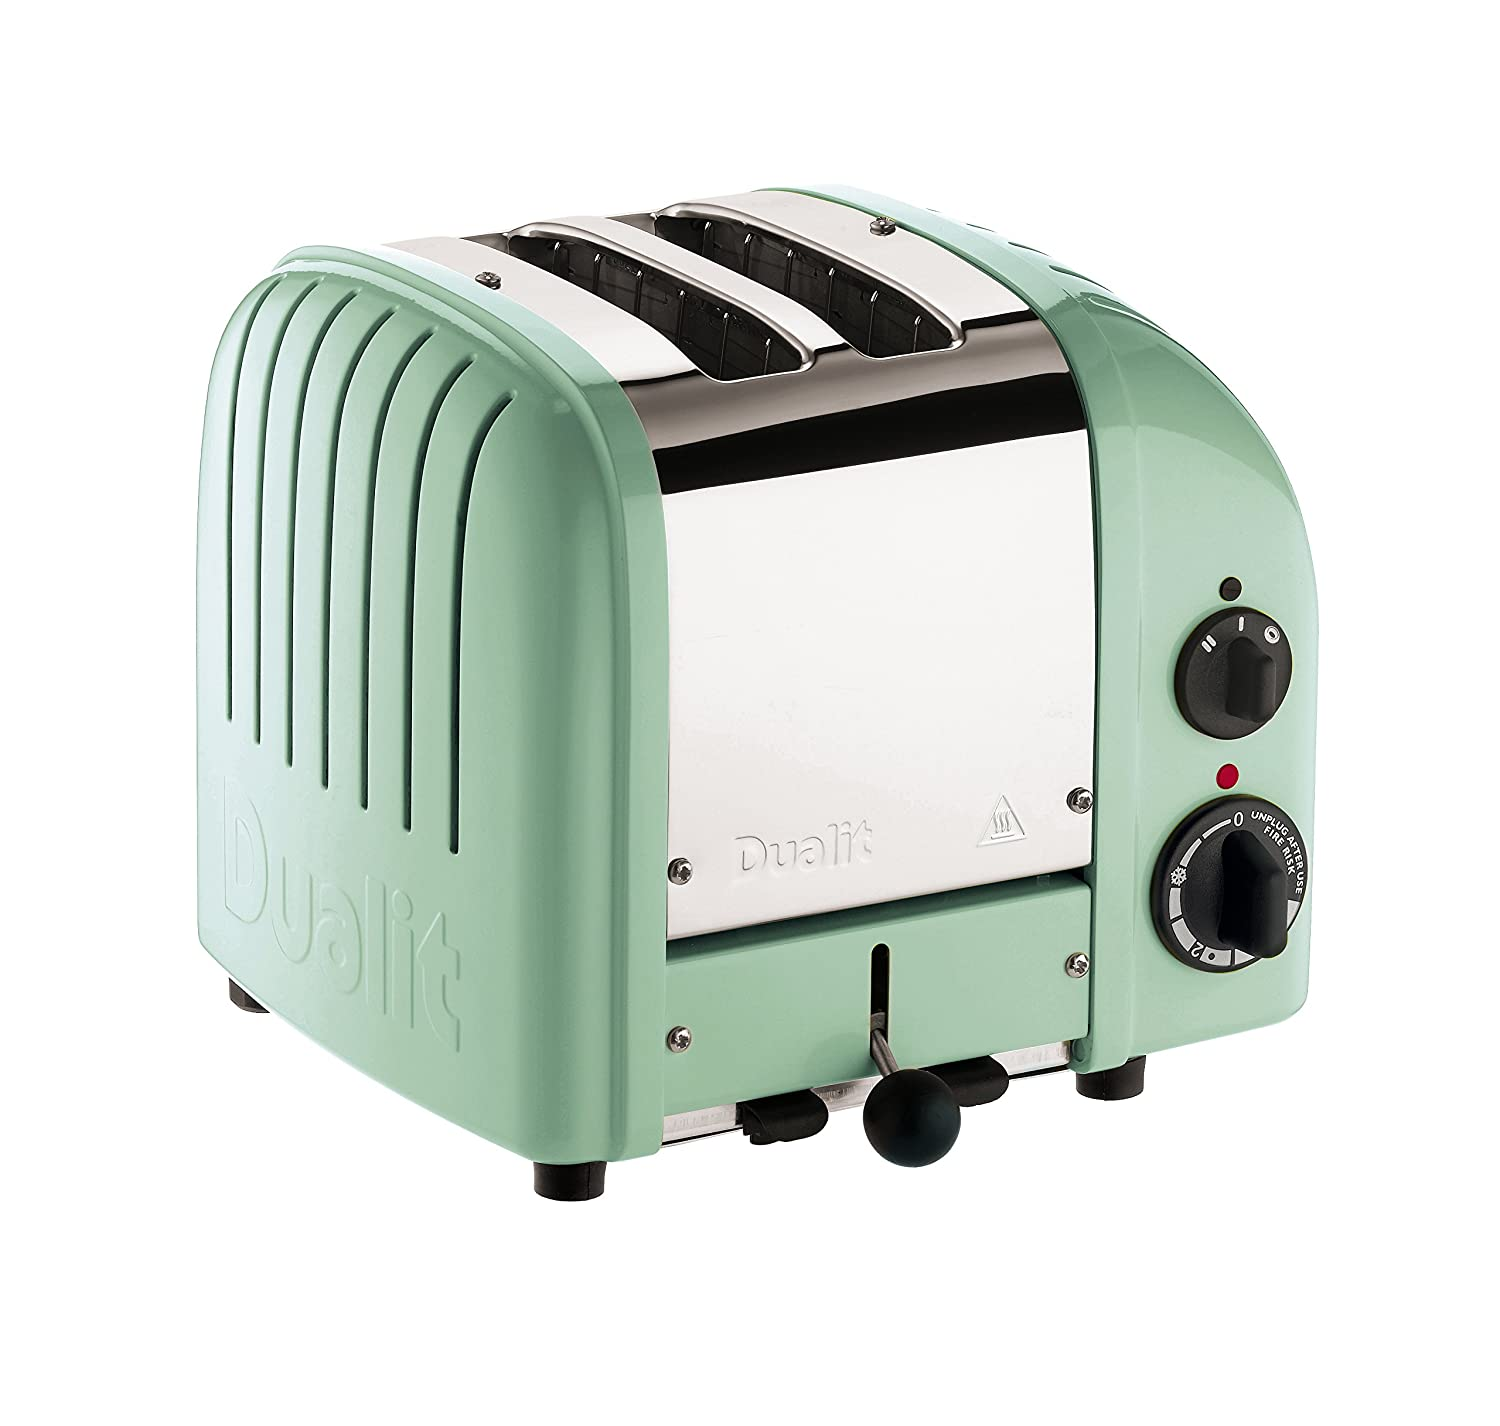 Dualit 27160 New Gen Toaster, Mint Green by Dualit